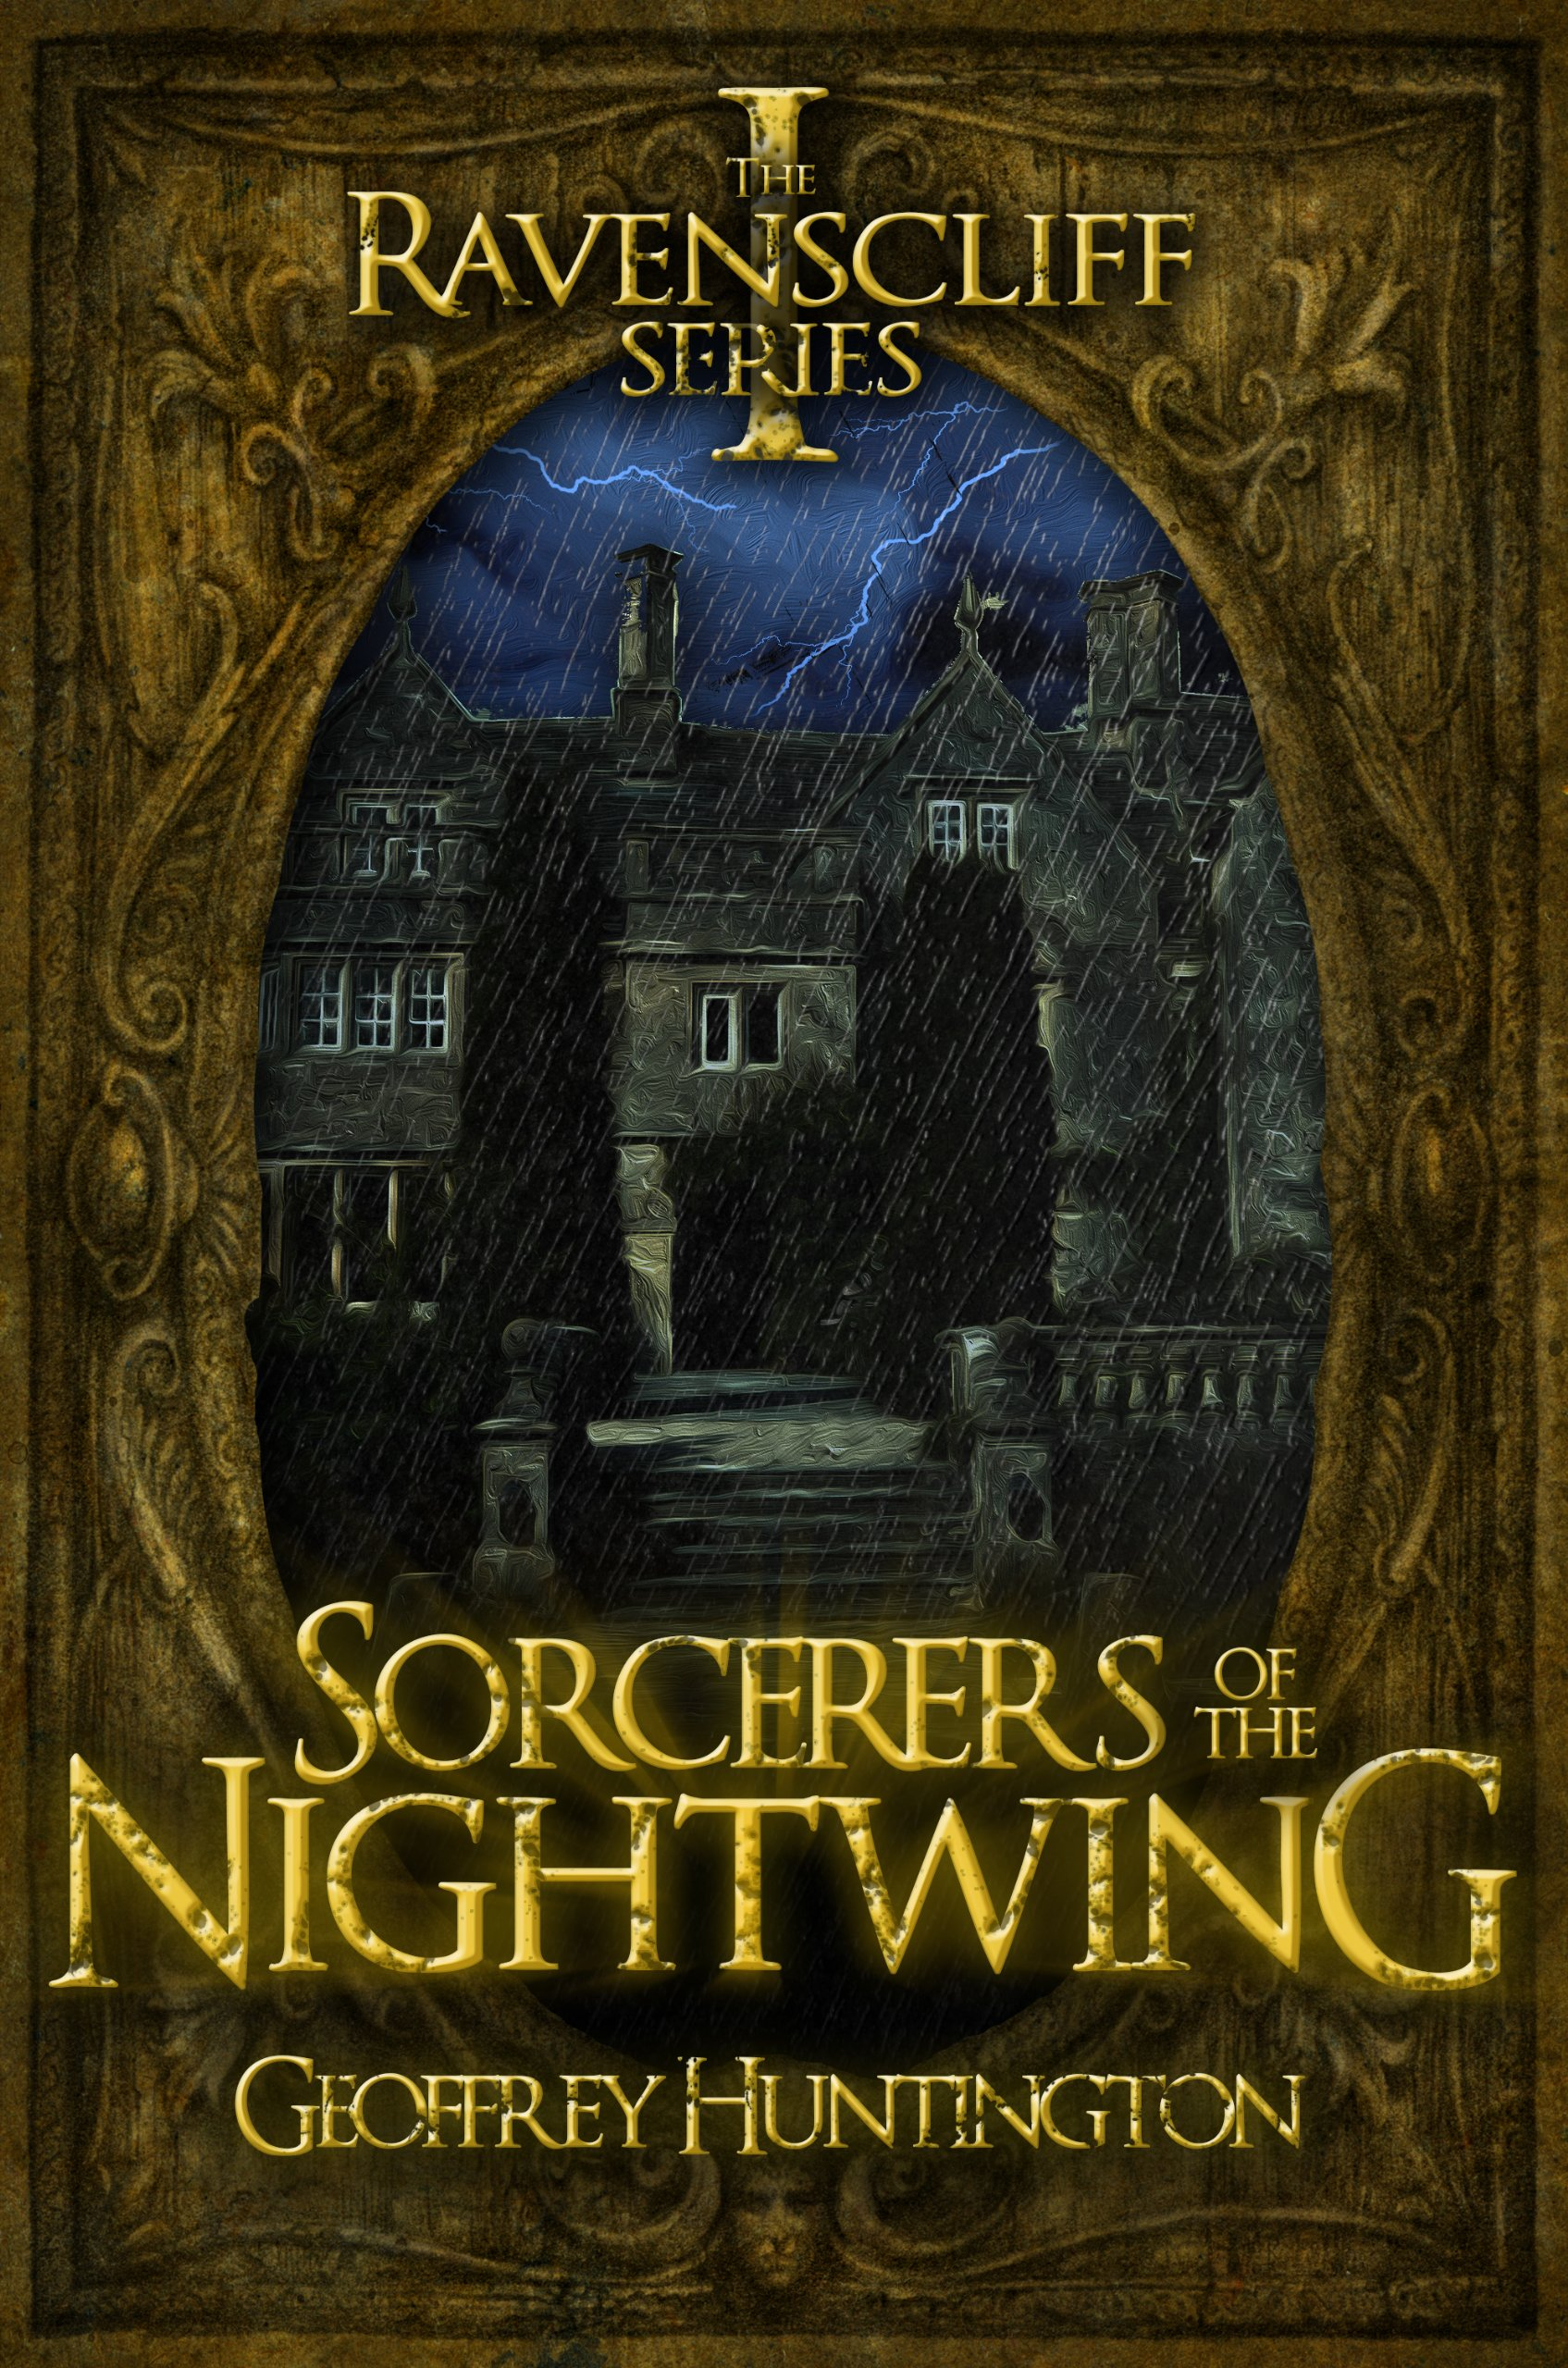 Sorcerers of the Nightwing: The Ravenscliff Series - Book One PDF